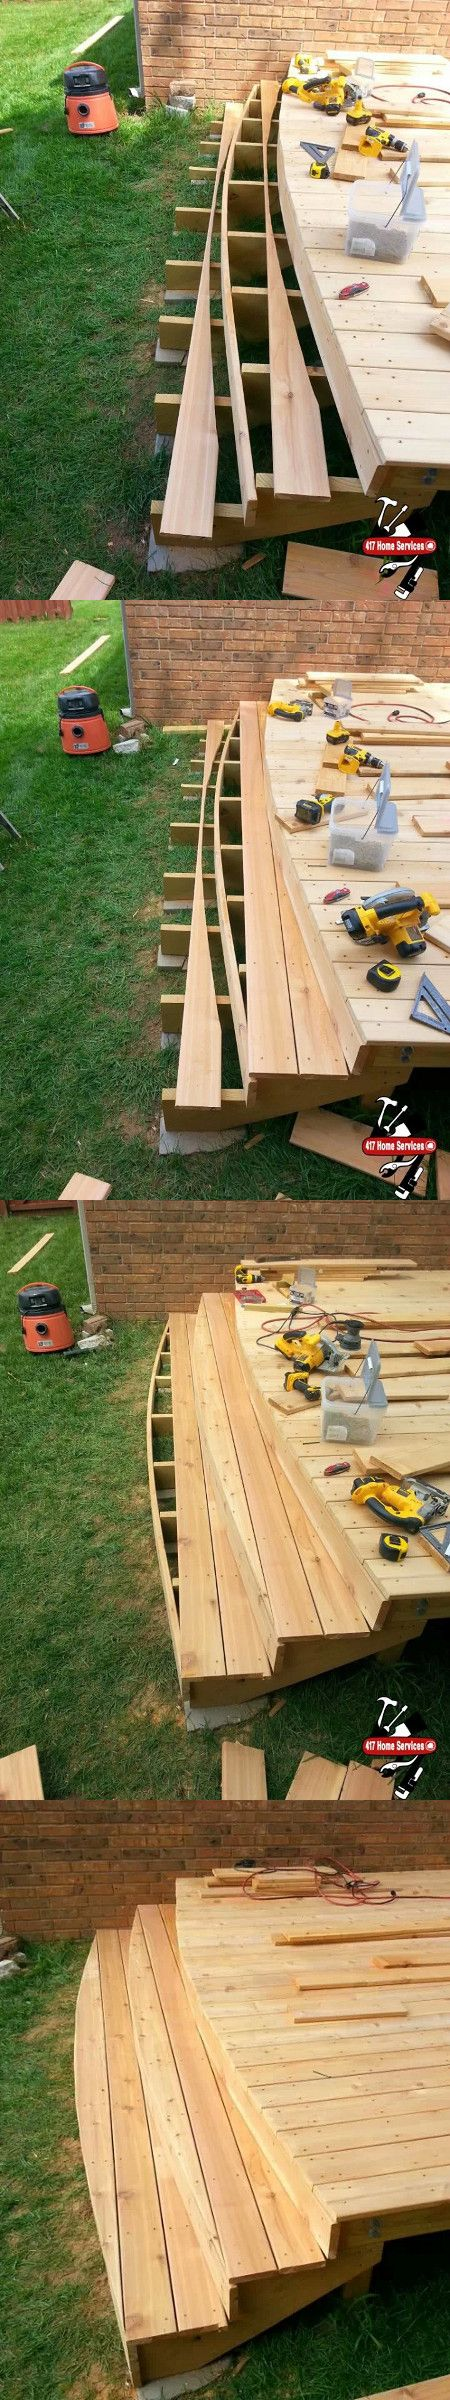 Best Rounded Deck Stairs Deck Stairs Porch Steps Front Lawn 400 x 300